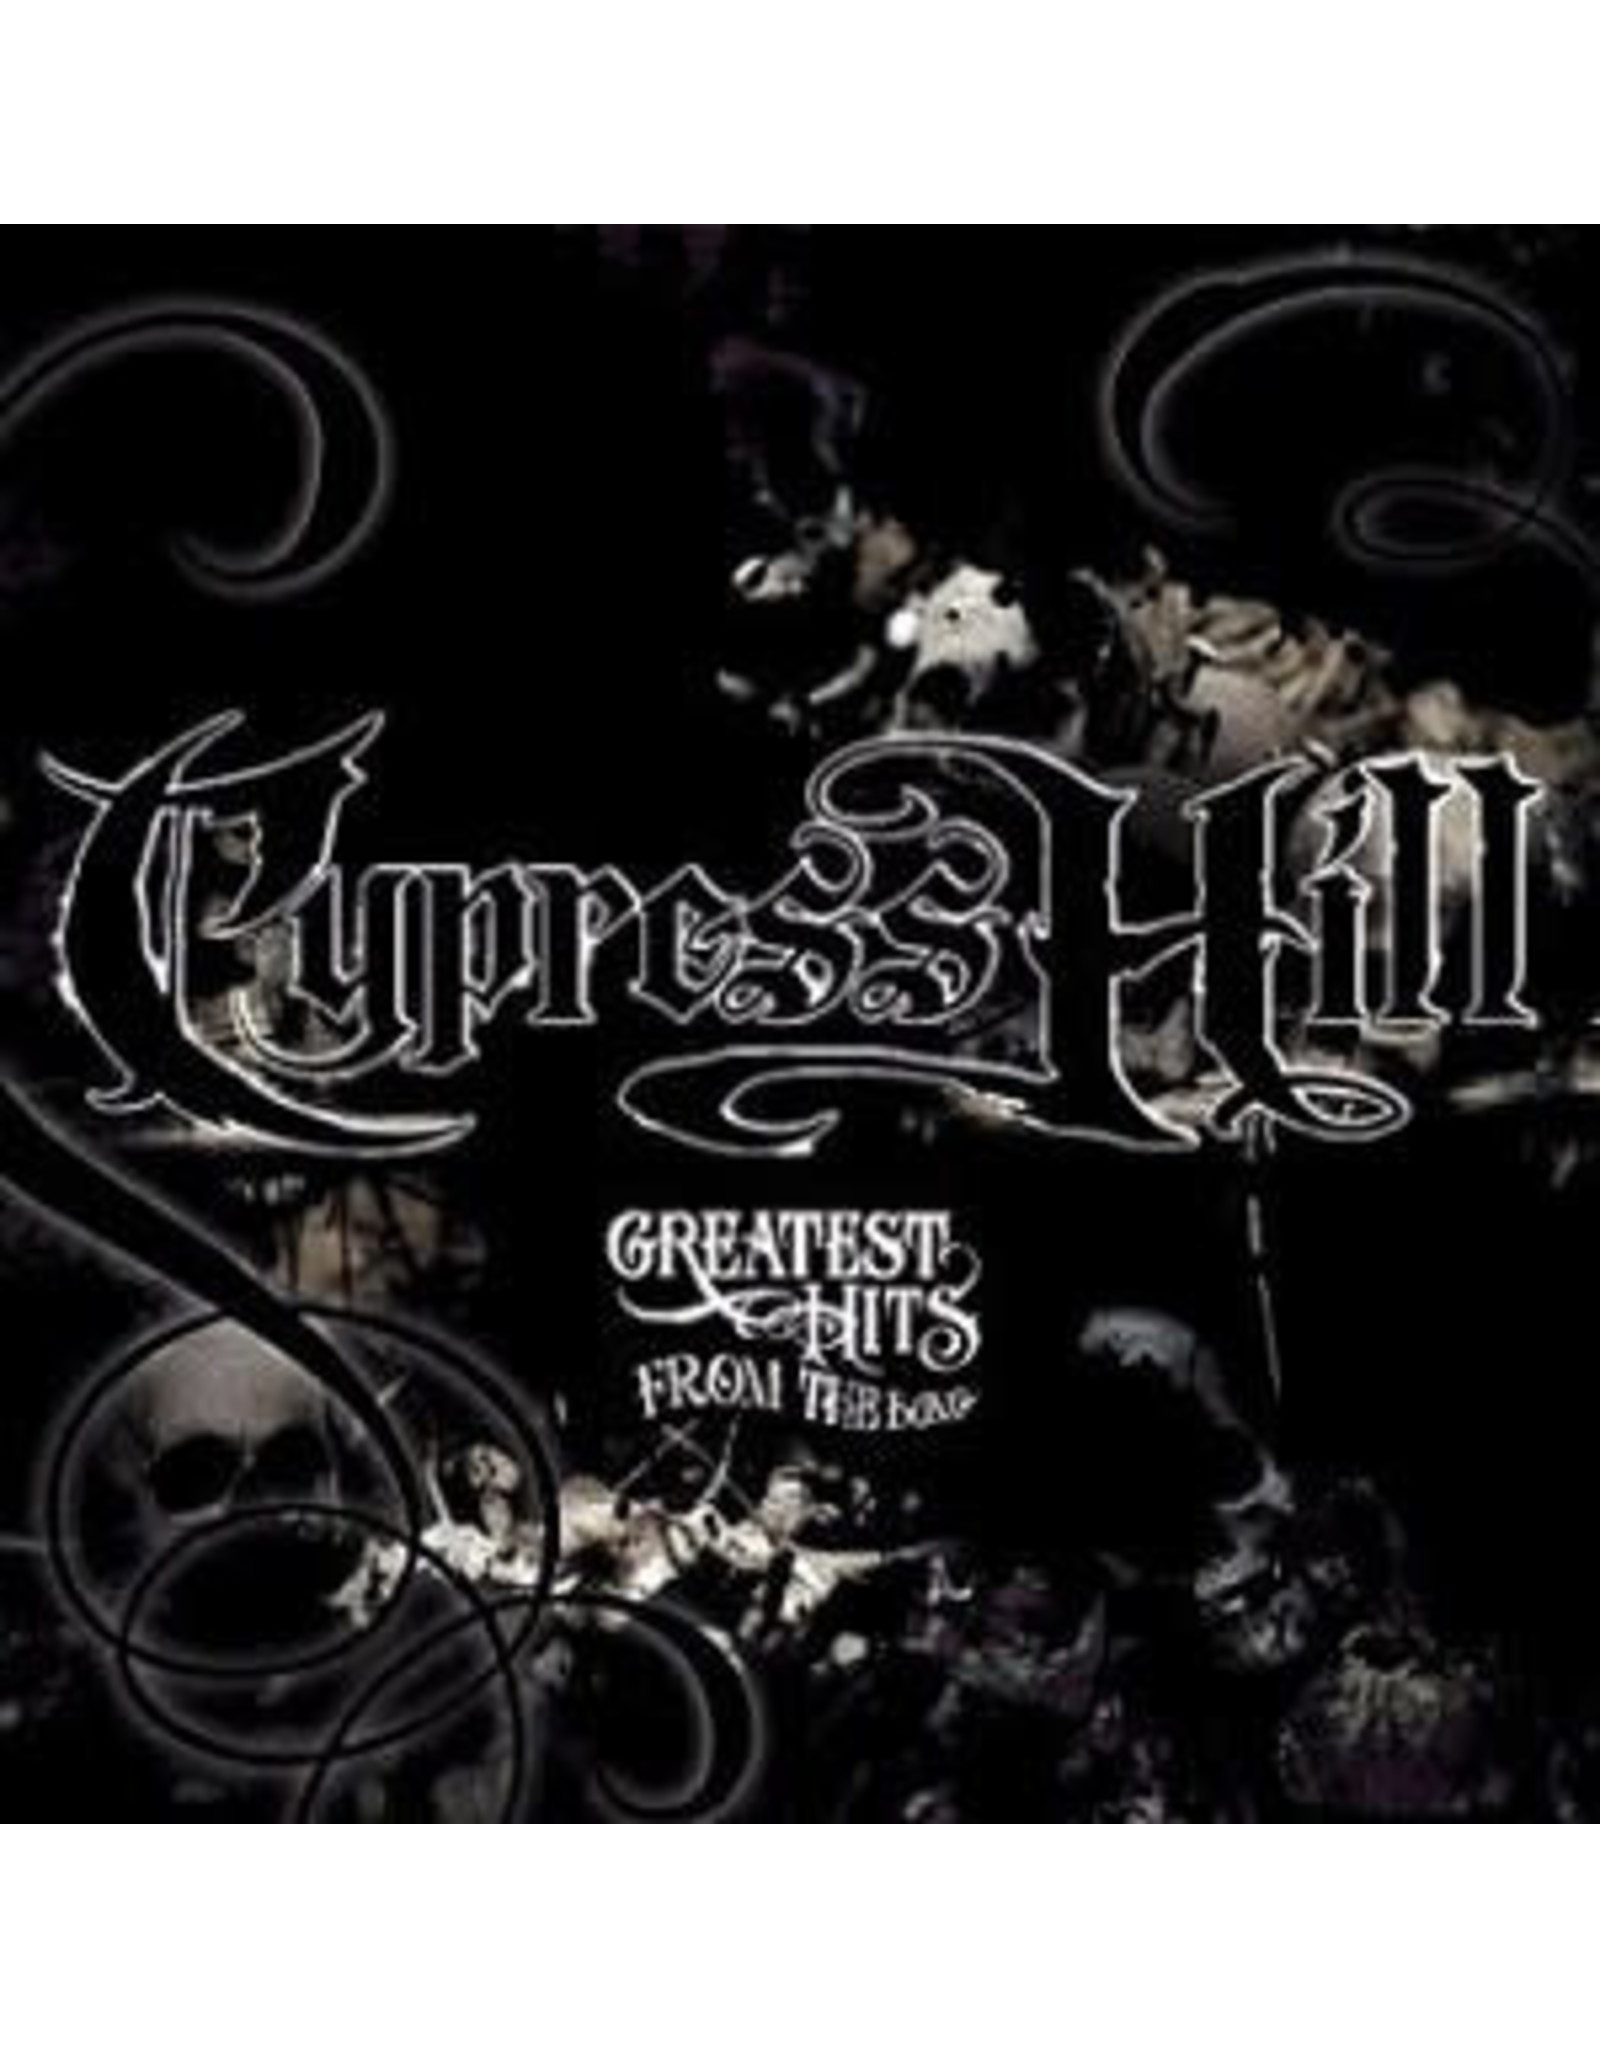 Cypress Hill - Greatest Hits From The Bong 2LP